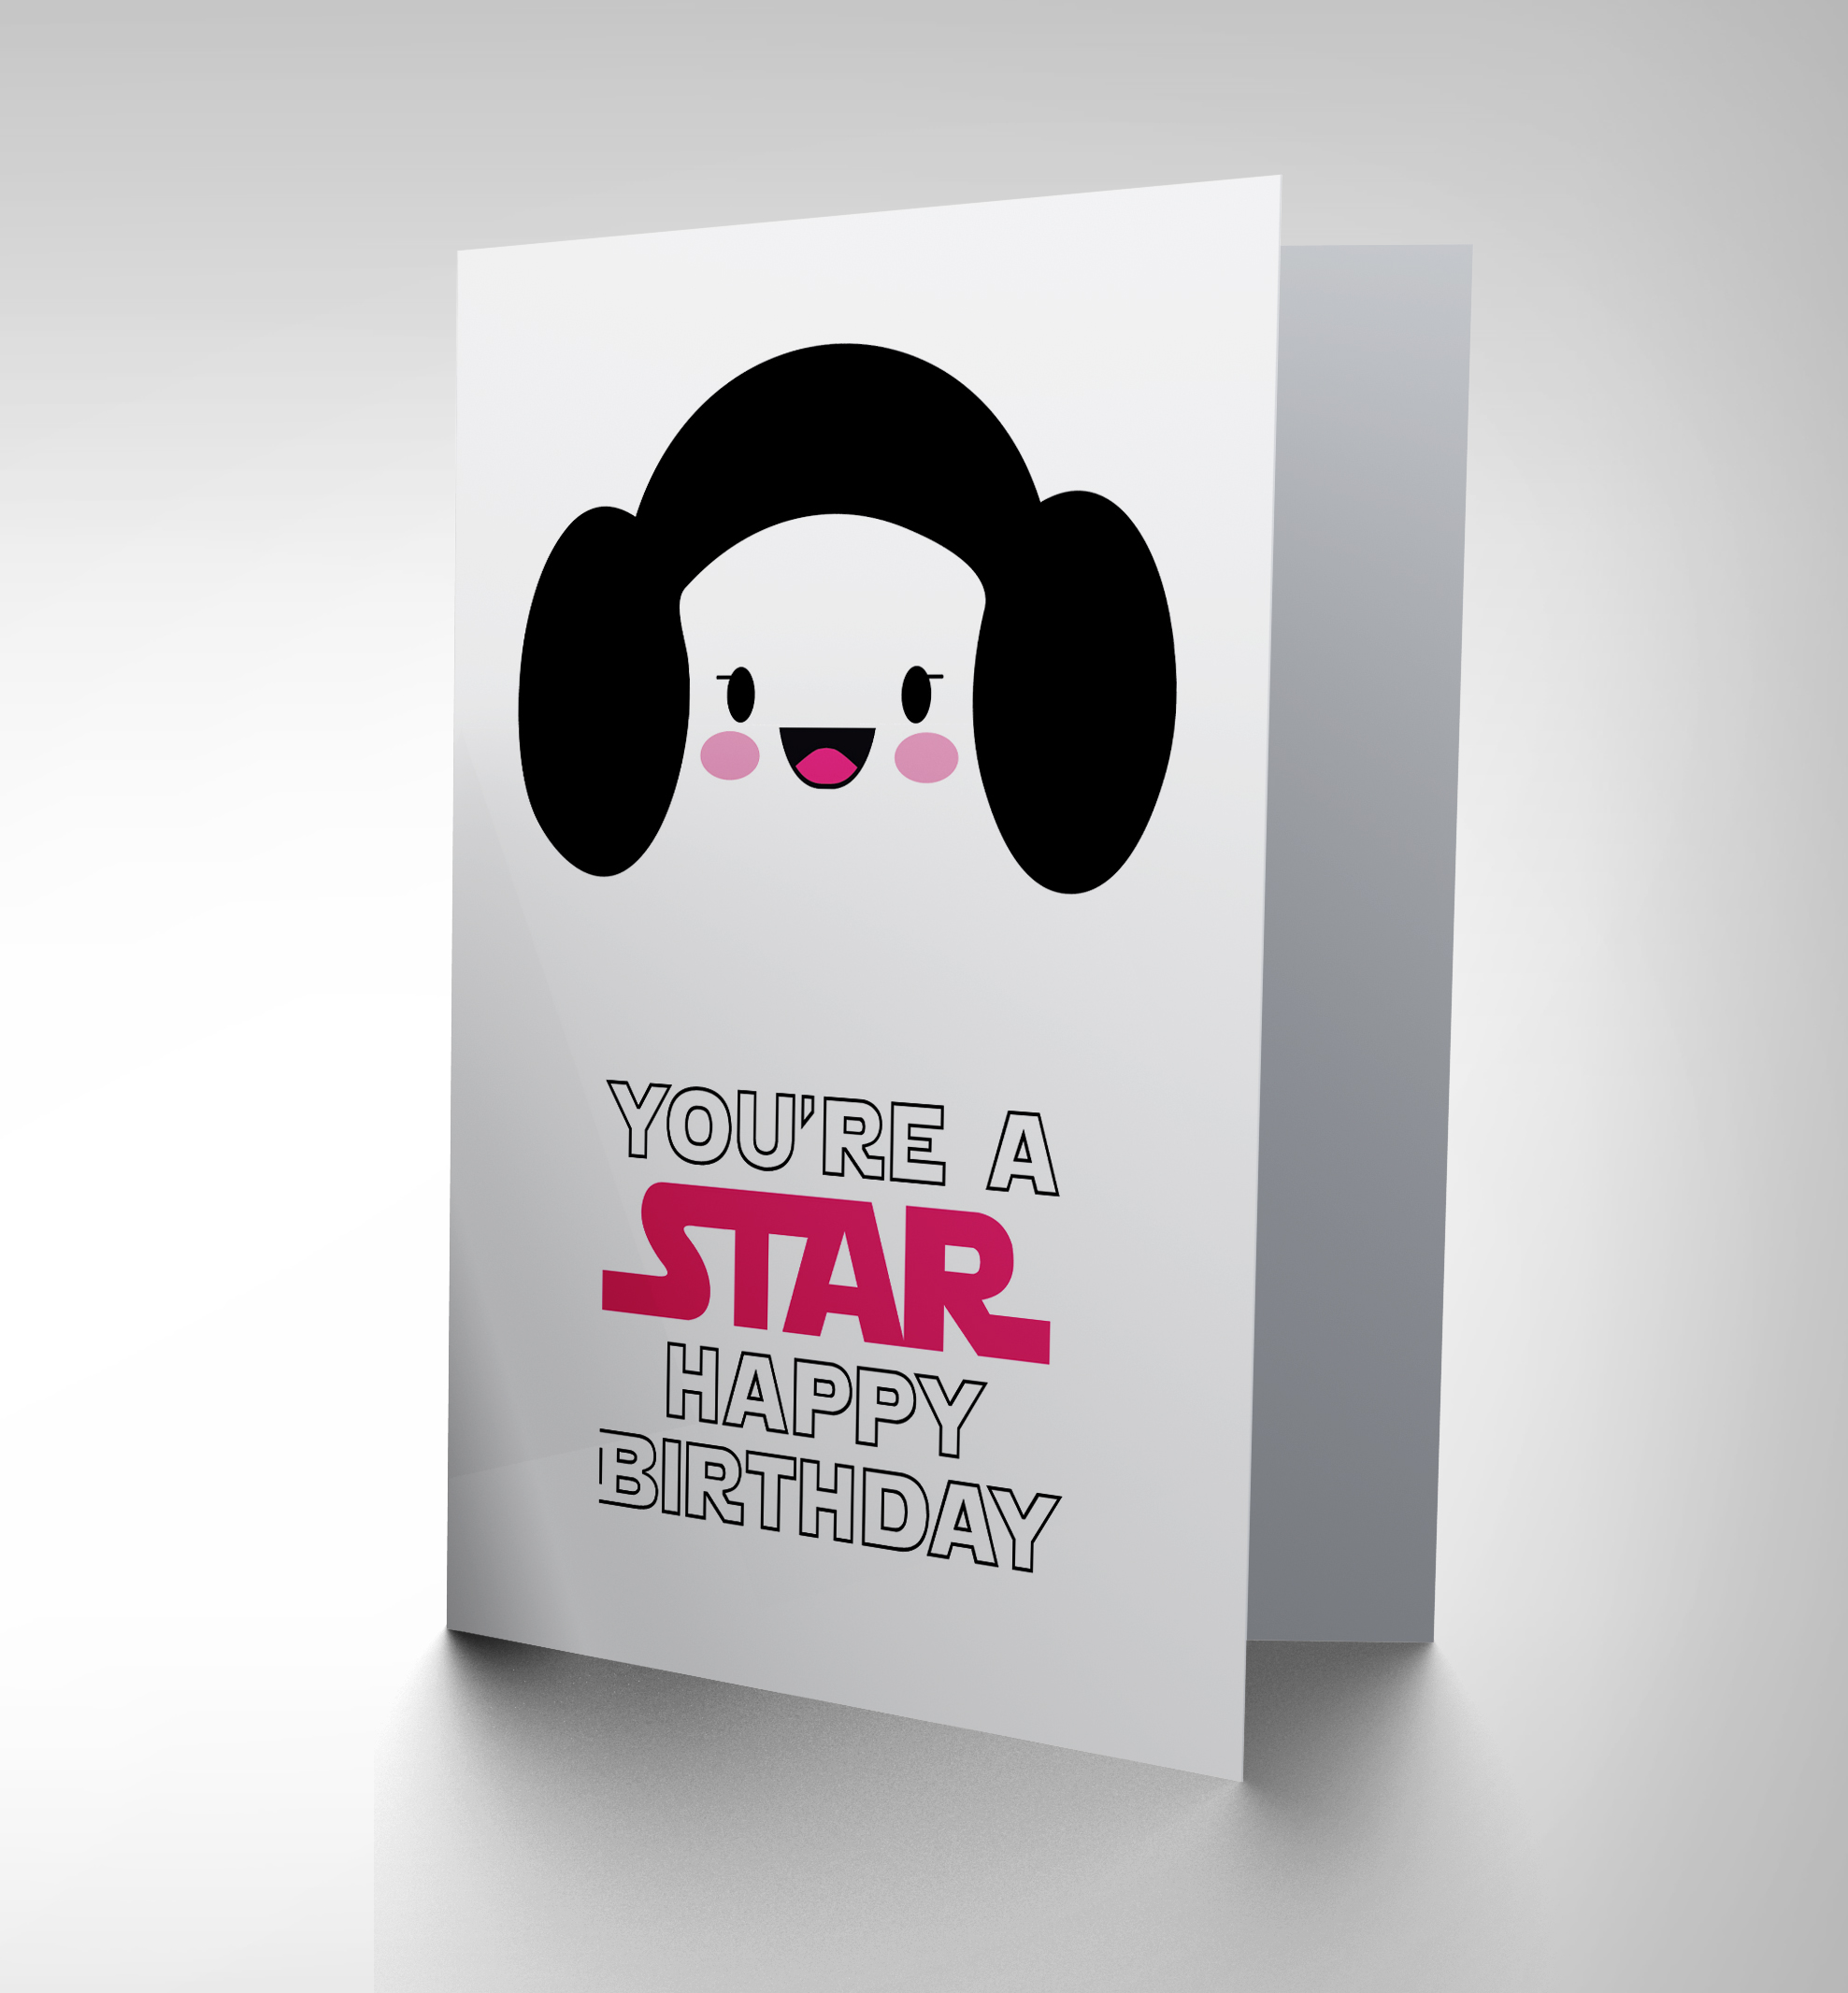 CARD BIRTHDAY HAPPY PRINCESS LEIA CARTOON STAR DESIGN GIFT CP2723